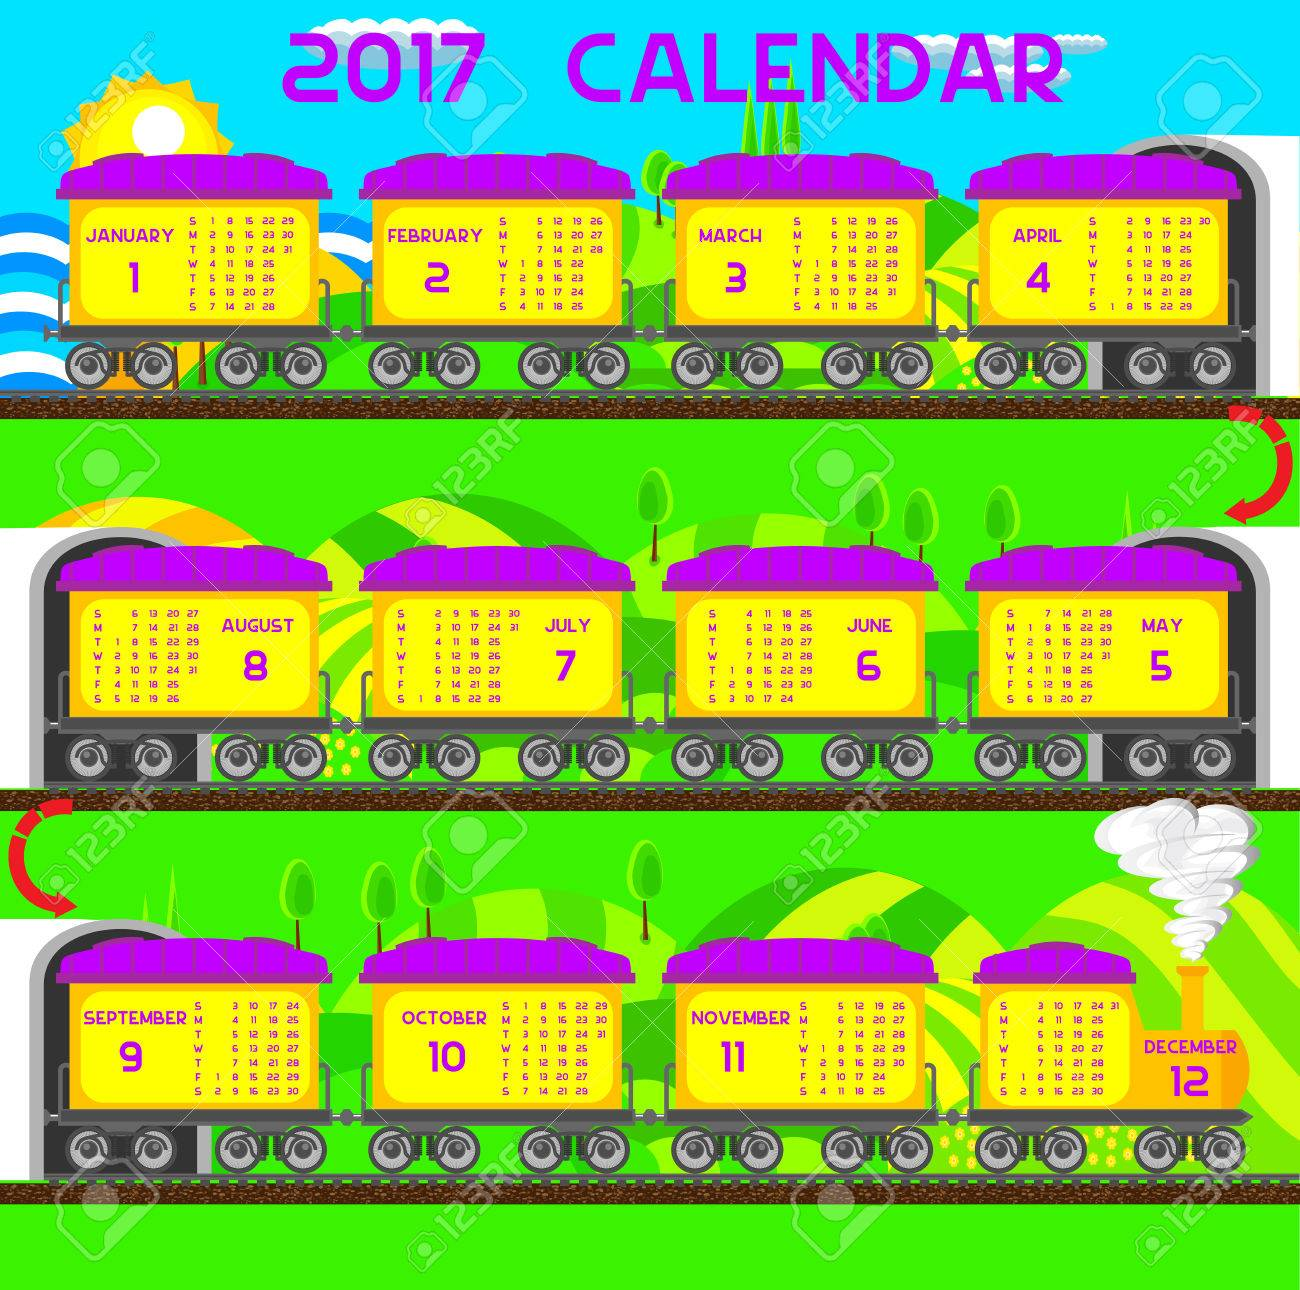 New Year Children S Calendar Train 2017 Royalty Free Cliparts